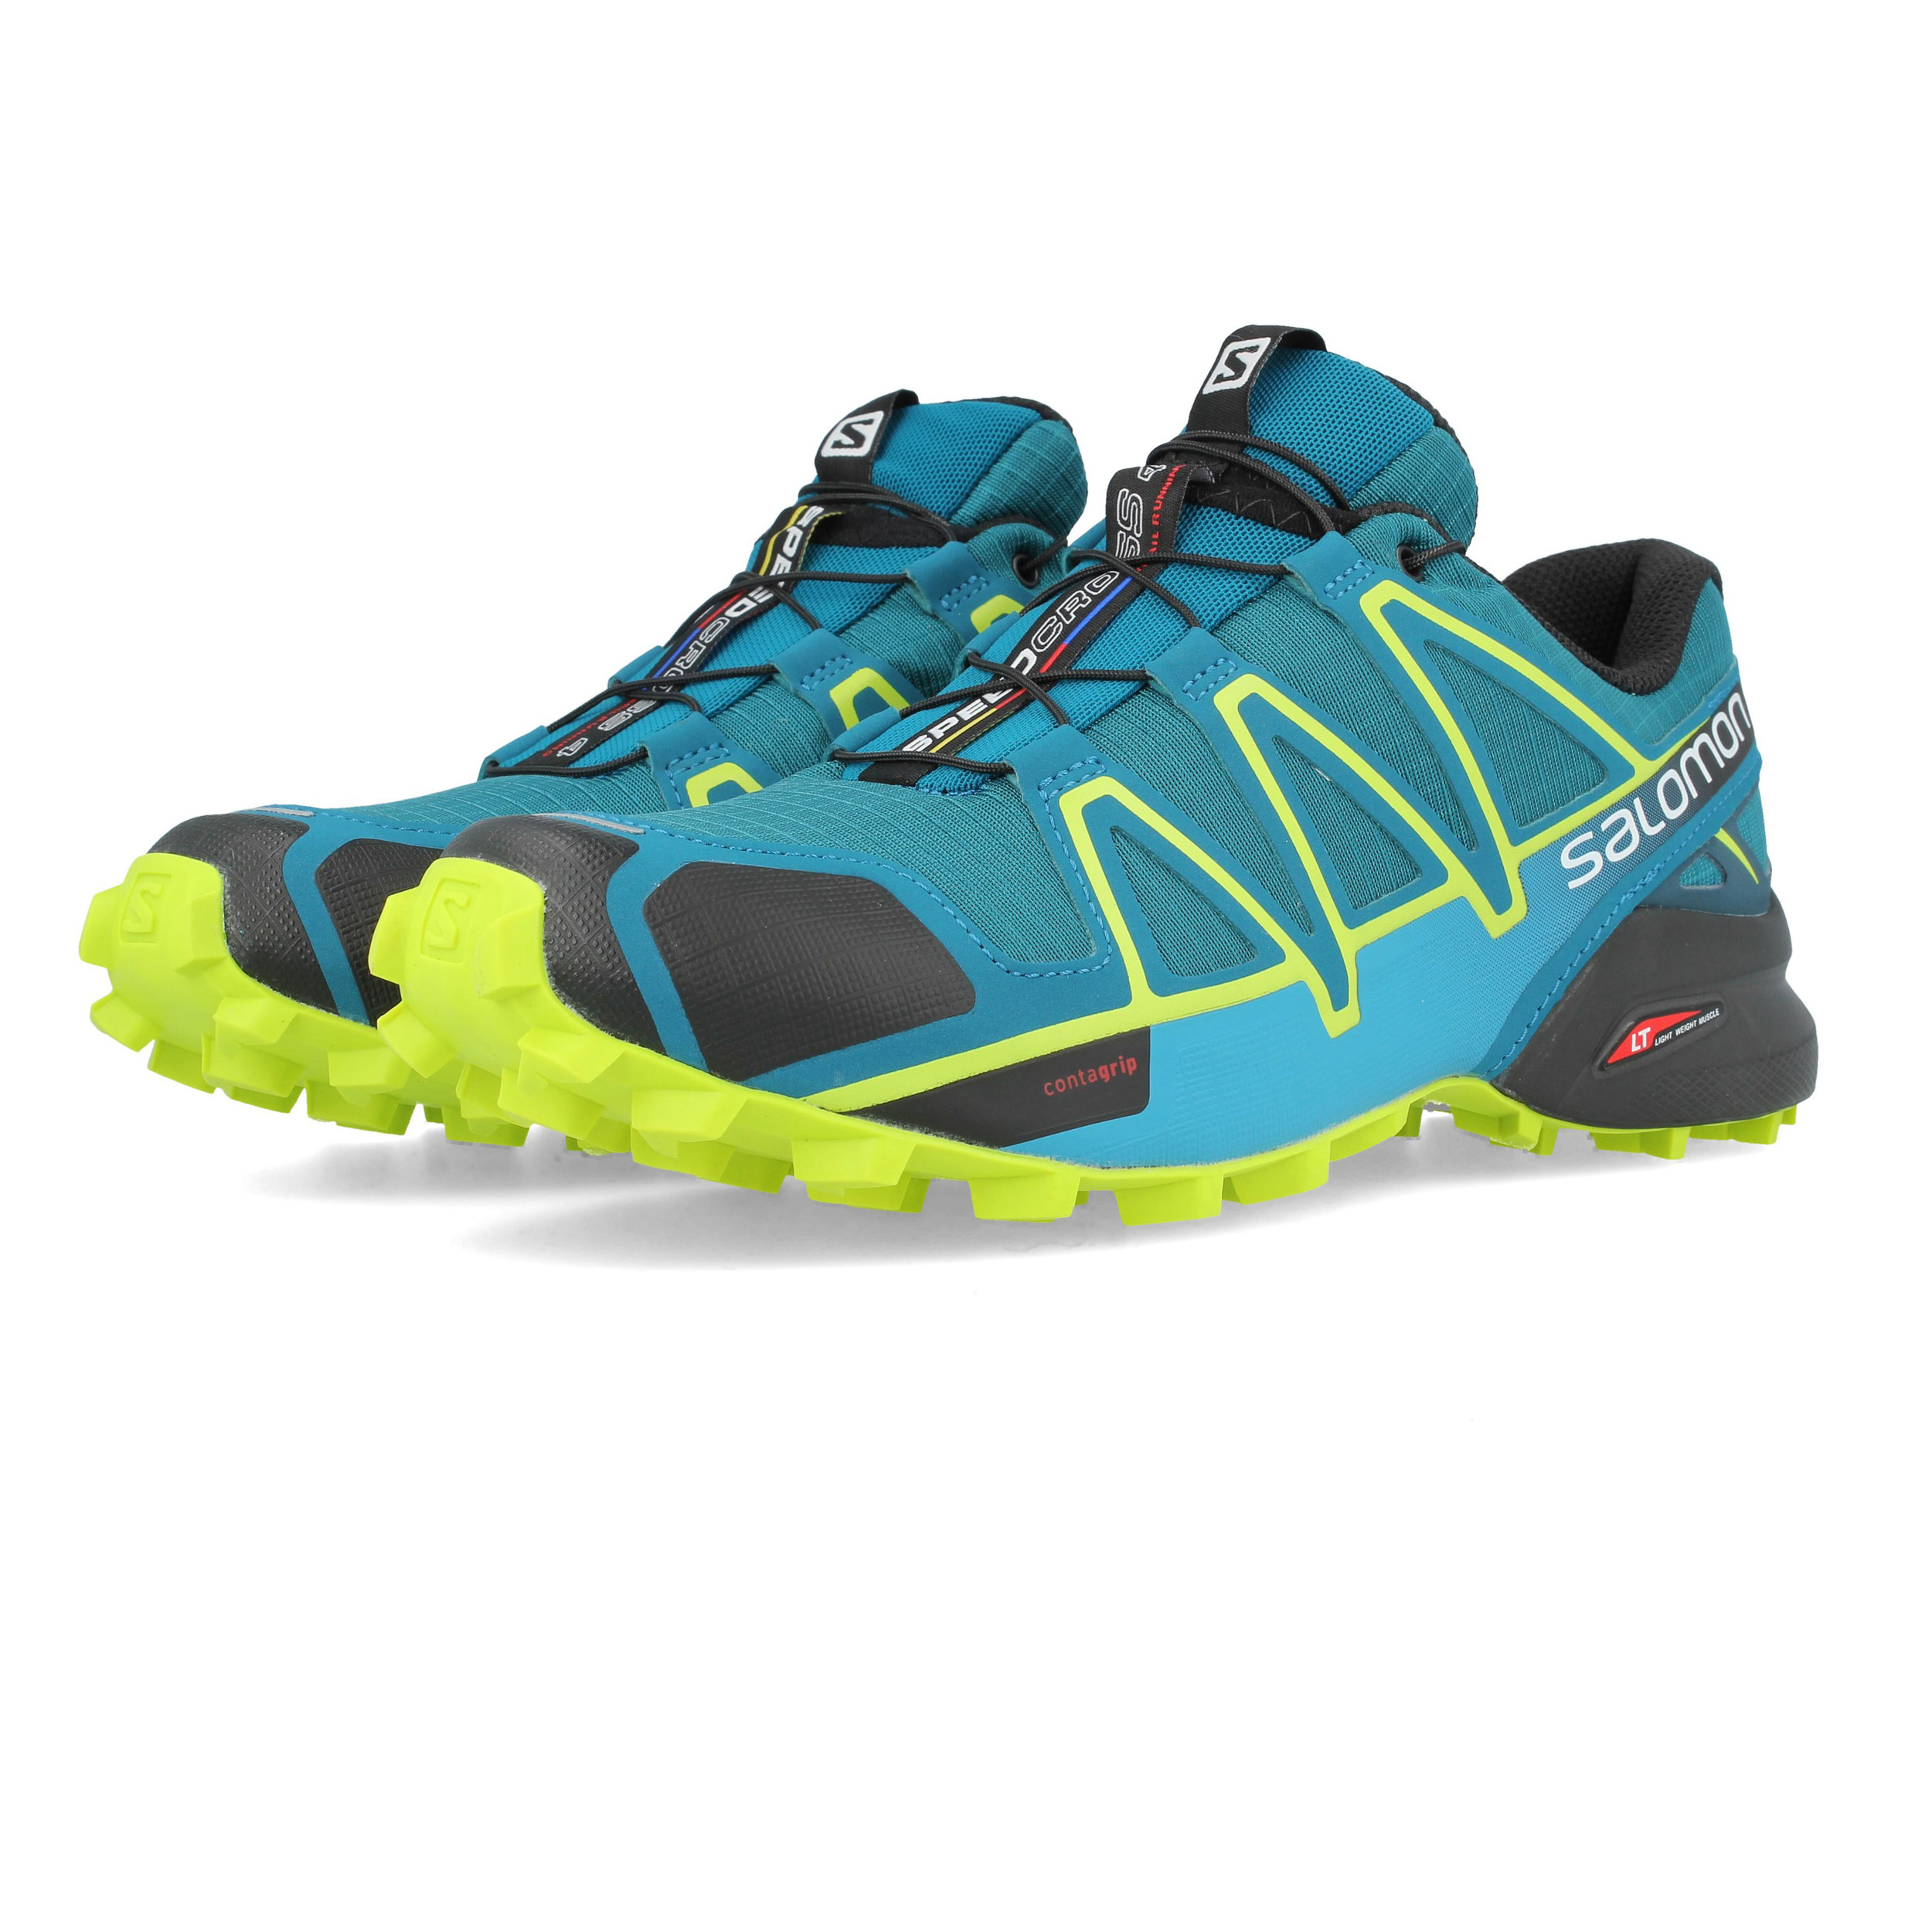 5da219b521d Details about Salomon Mens Speedcross 4 Trail Running Shoes Trainers  Sneakers Sport Blue Green